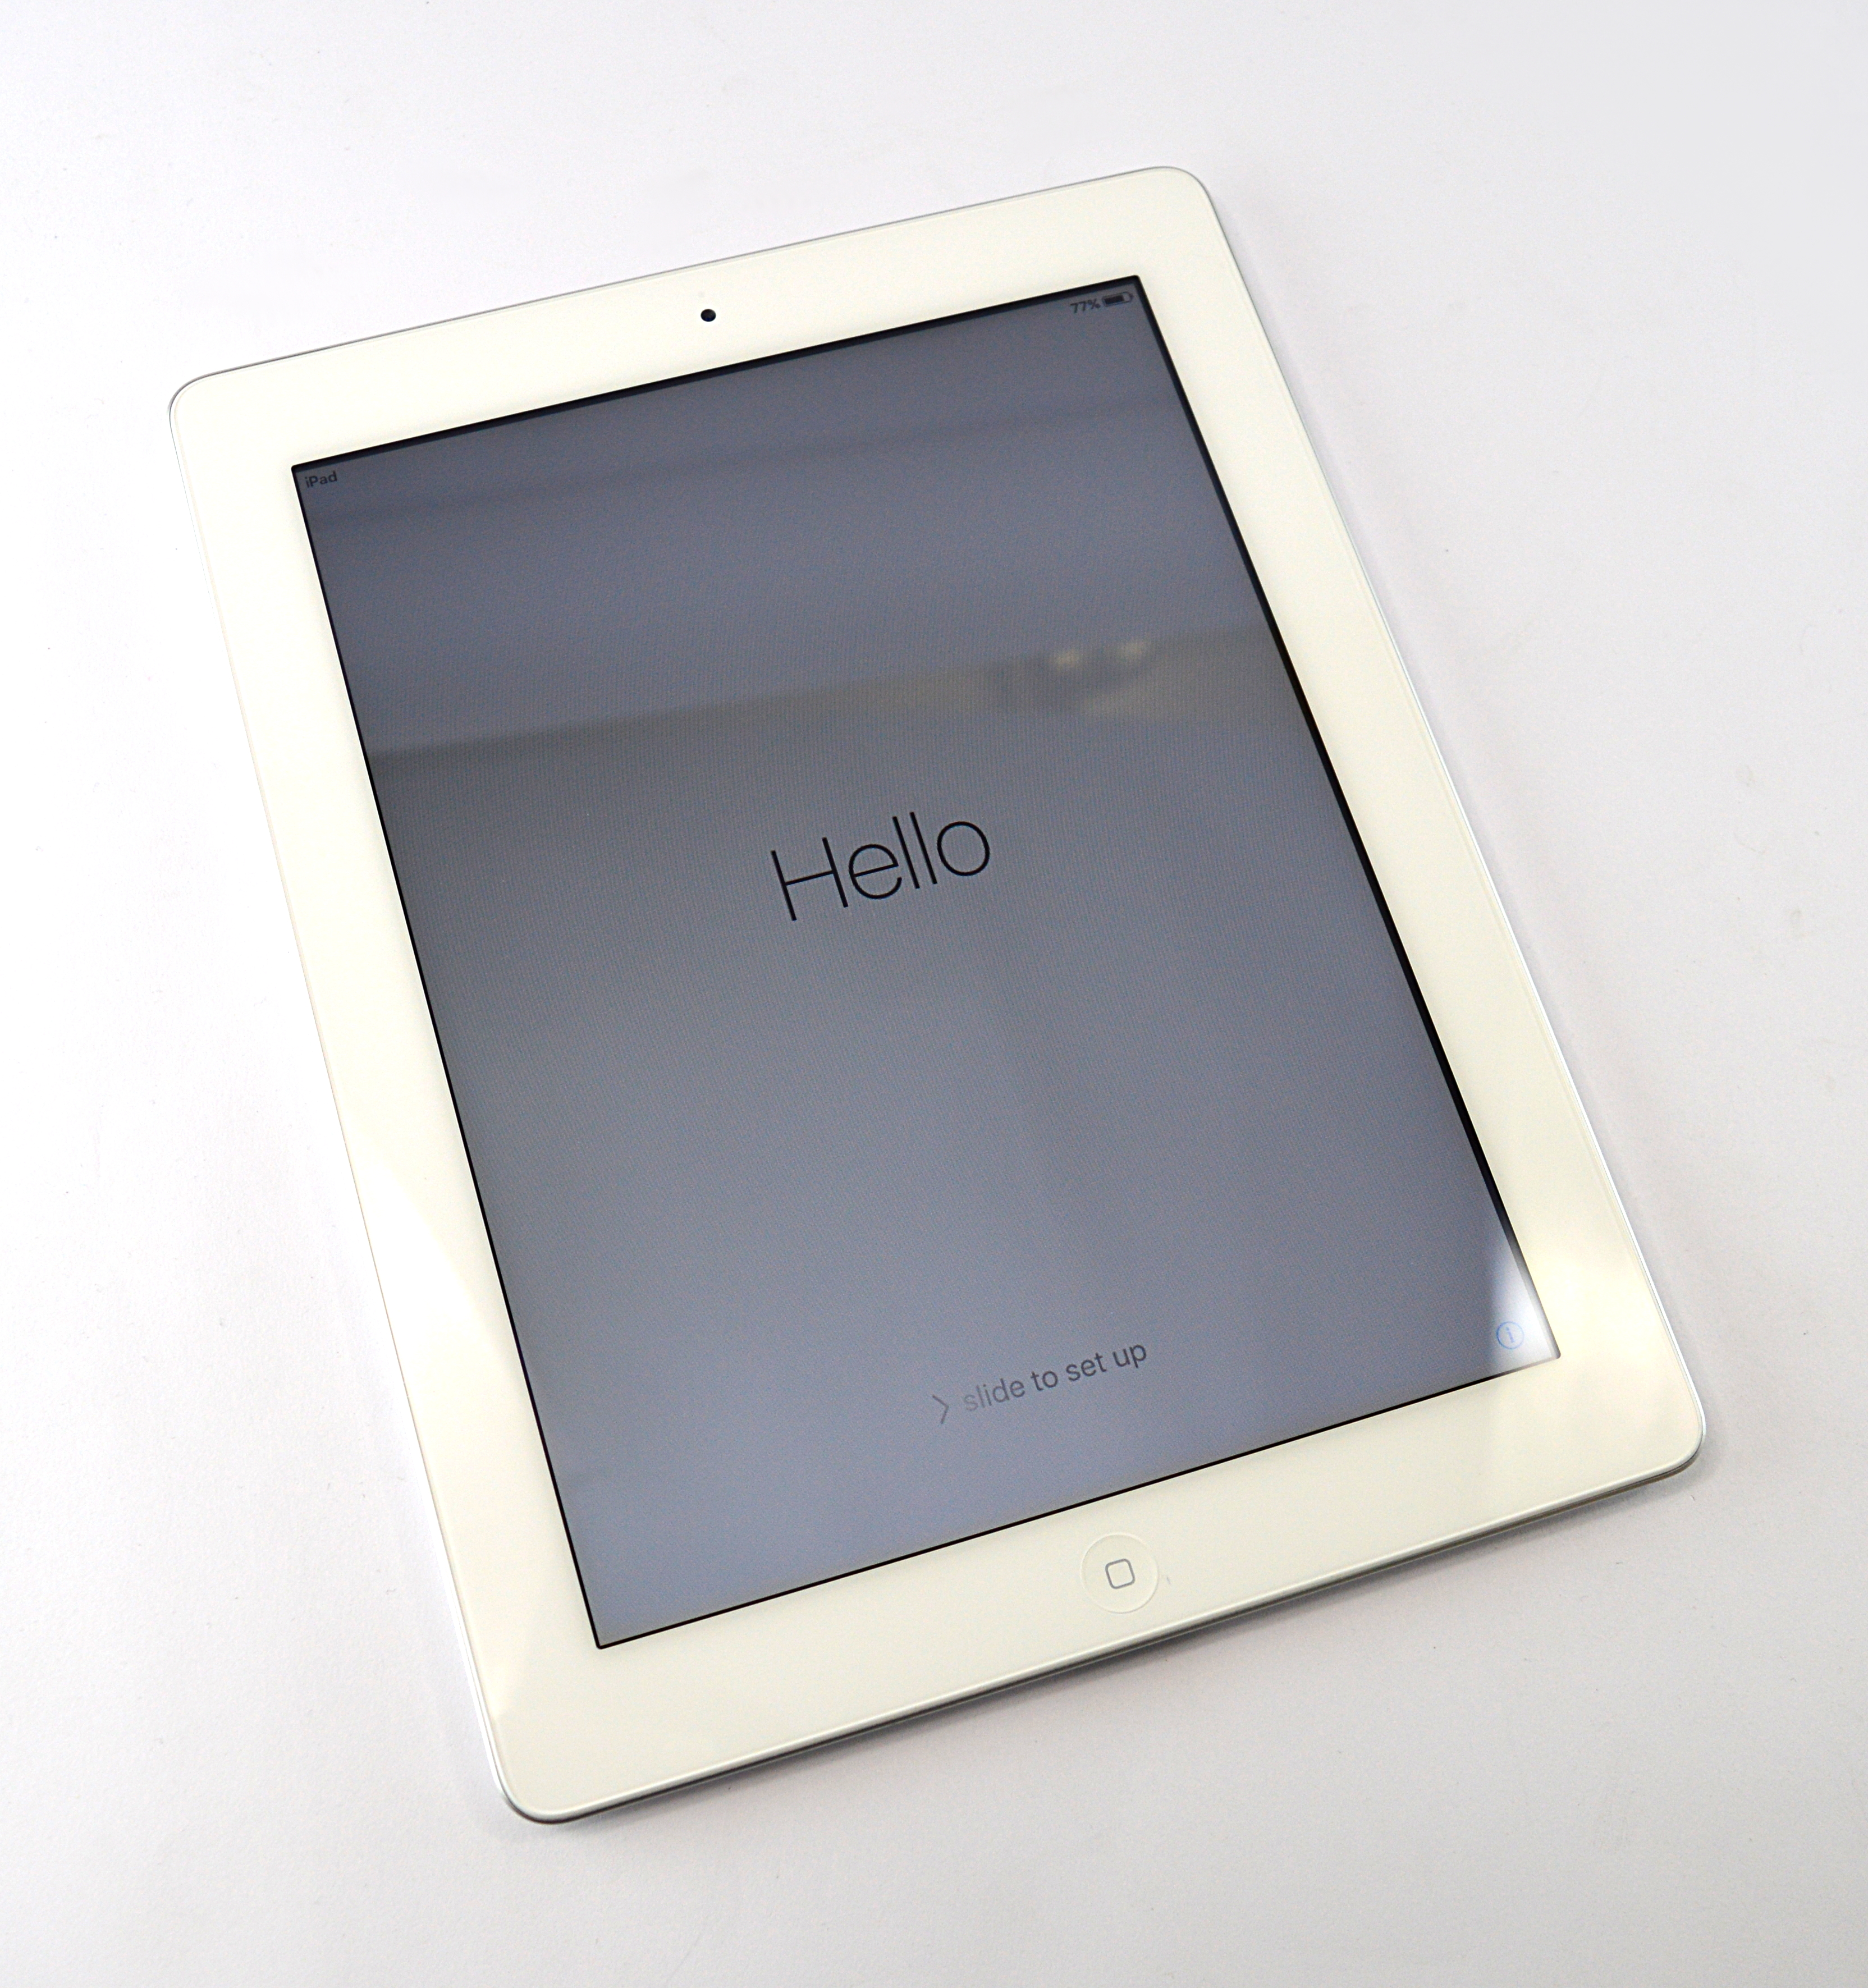 "Apple iPad 2 (Wi-Fi Only) A1395 EMC 2415 1GHz Apple A5 512MB RAM 16GB 9.7"" White"